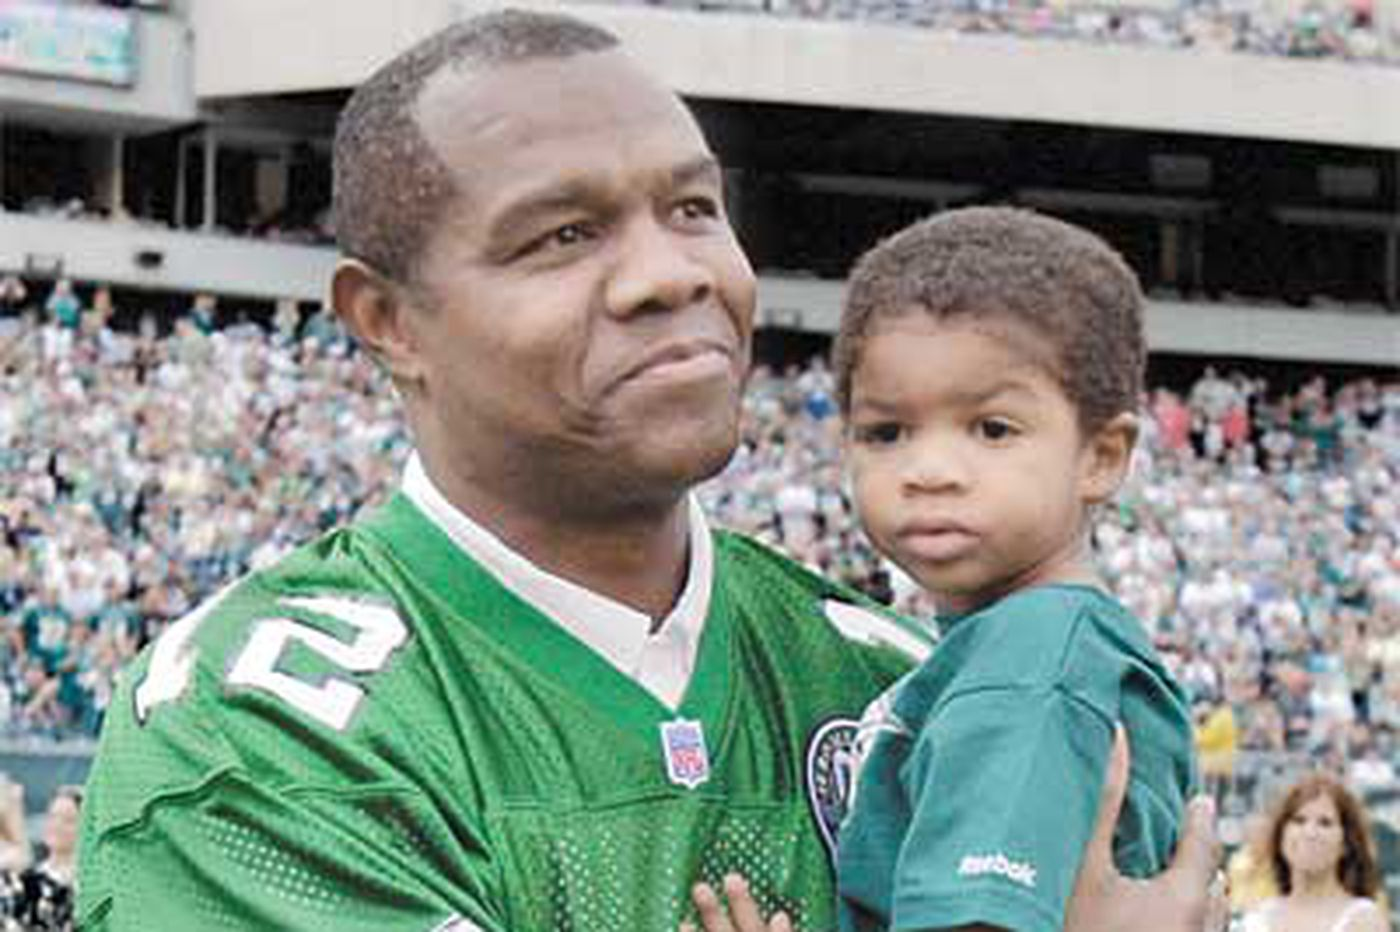 Former Eagle Randall Cunningham's 2-year-old son found floating in hot tub